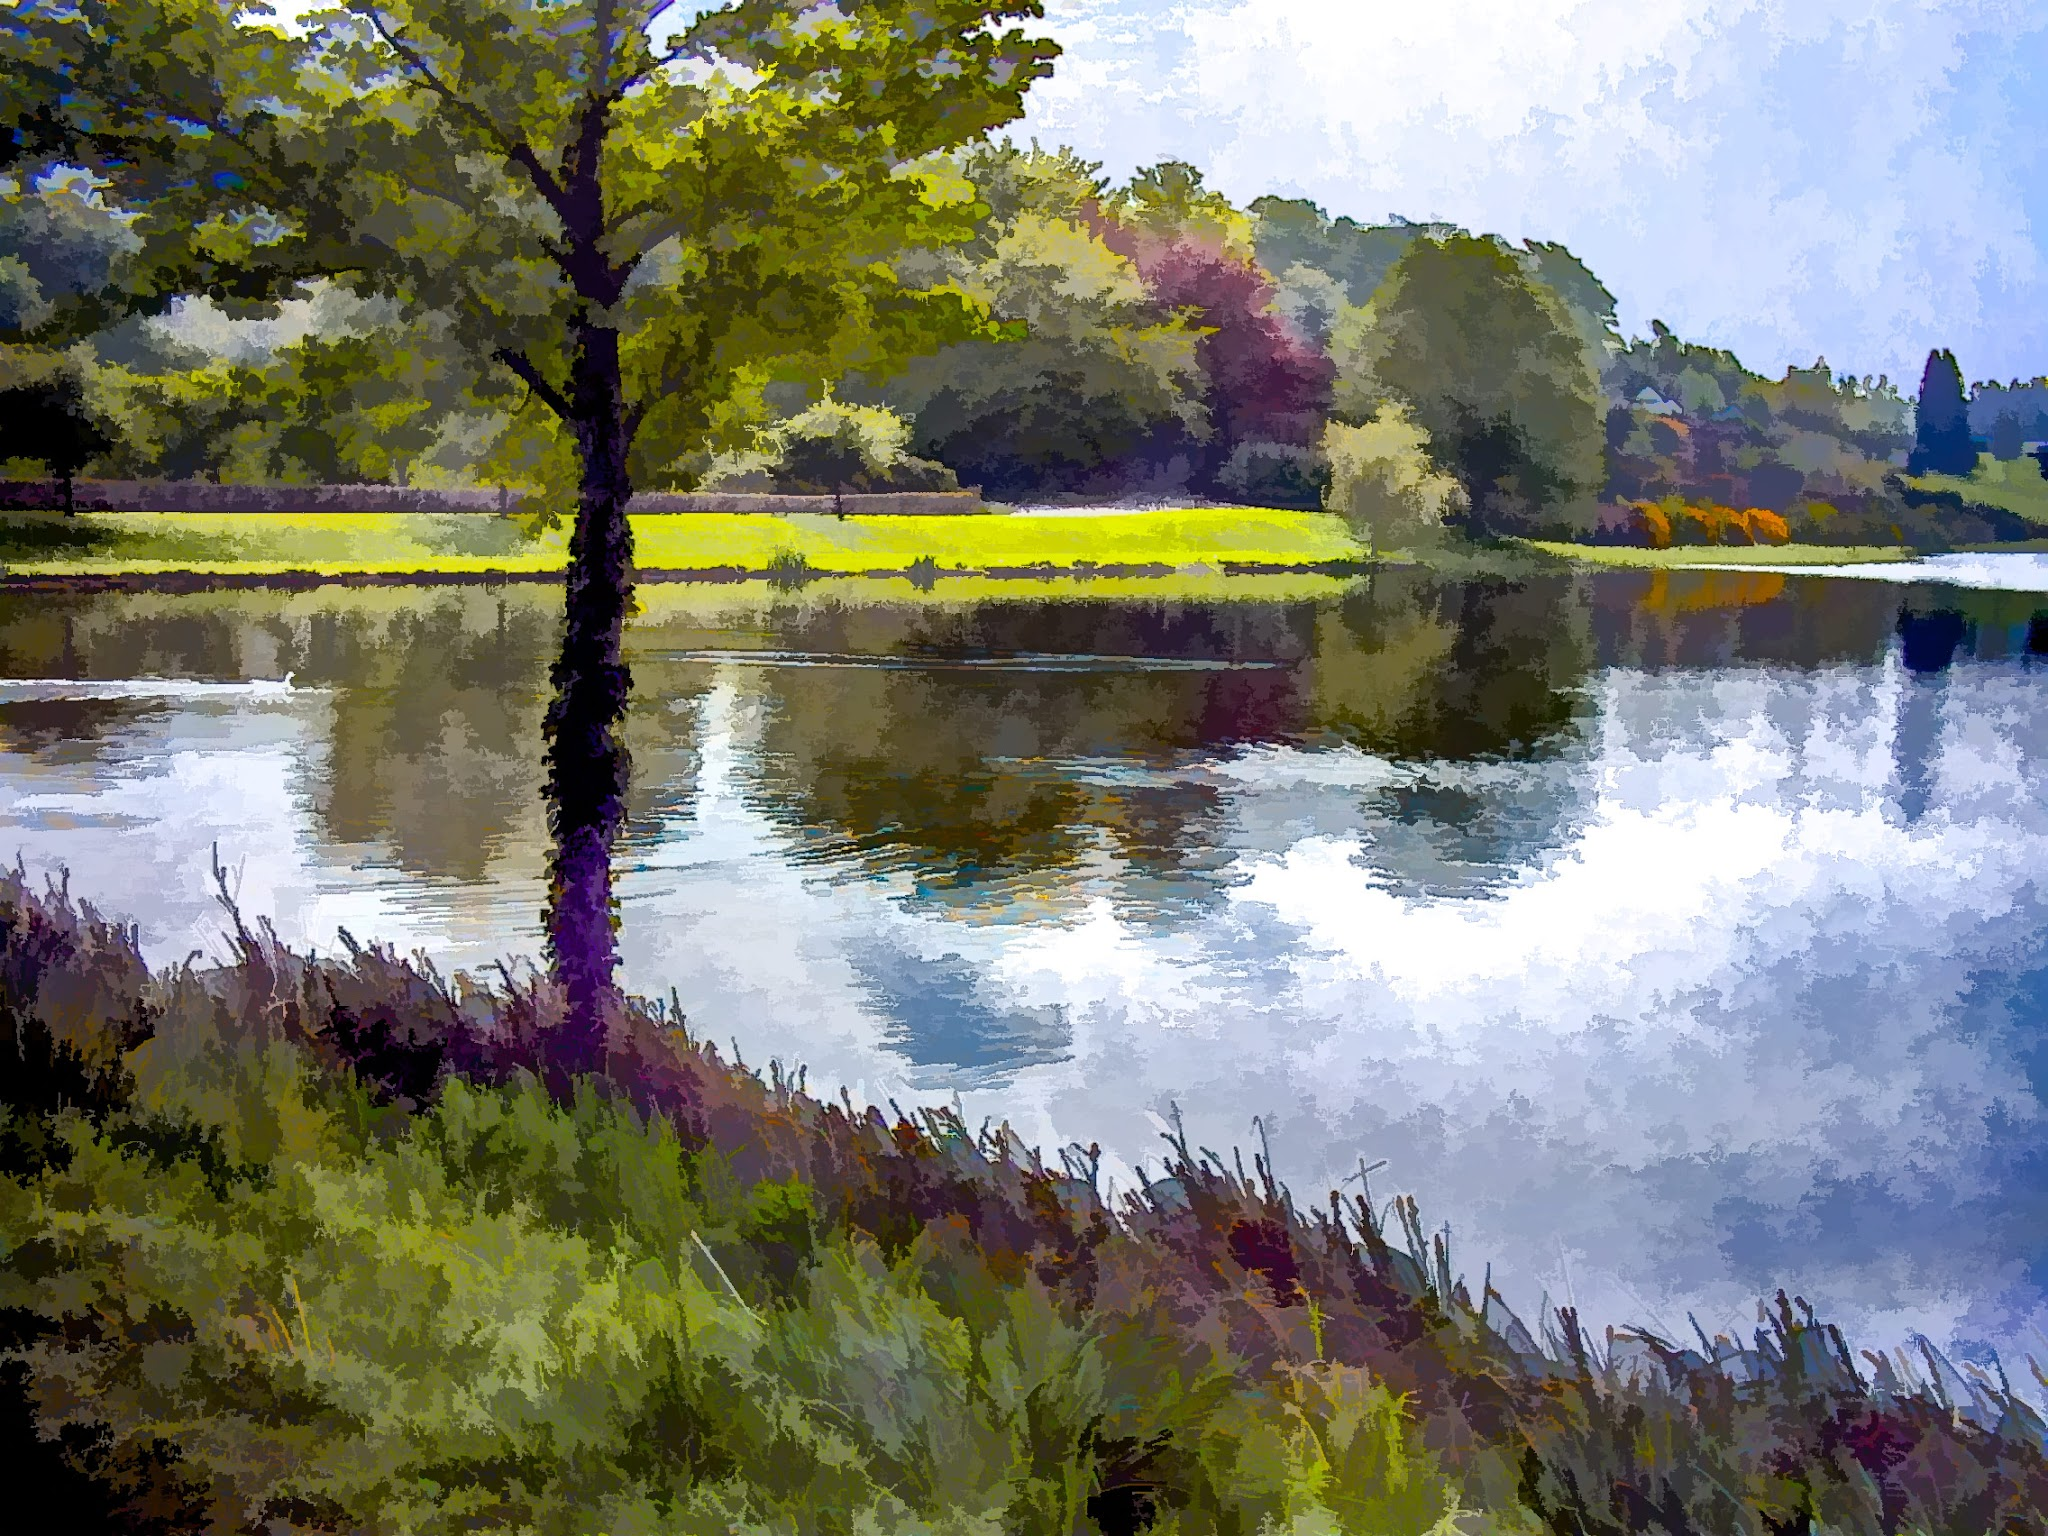 Photo: Water At Leeds Castle Digital watercolor  The original photo was OK. There's a version of it already in the album done up about as well as it can be as a straight photo. This version is what I got by running it through #TopazSimplify4 with a bit of other adjustment layering.  #Travel  #England  #LeedsCastle  #Watercolor